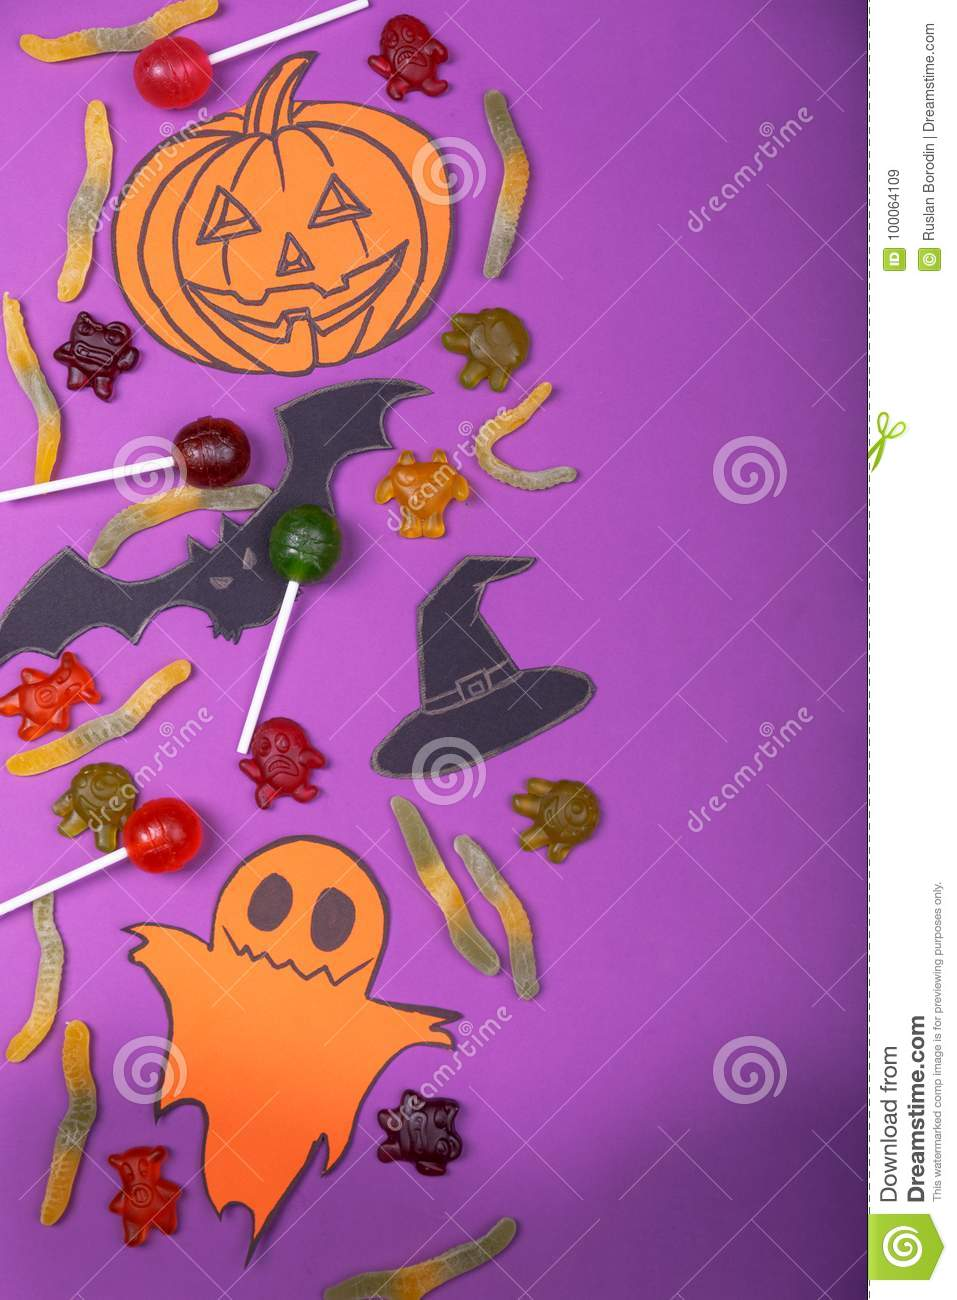 Happy Halloween card concept. Cut out of paper pumpkin for a party design.